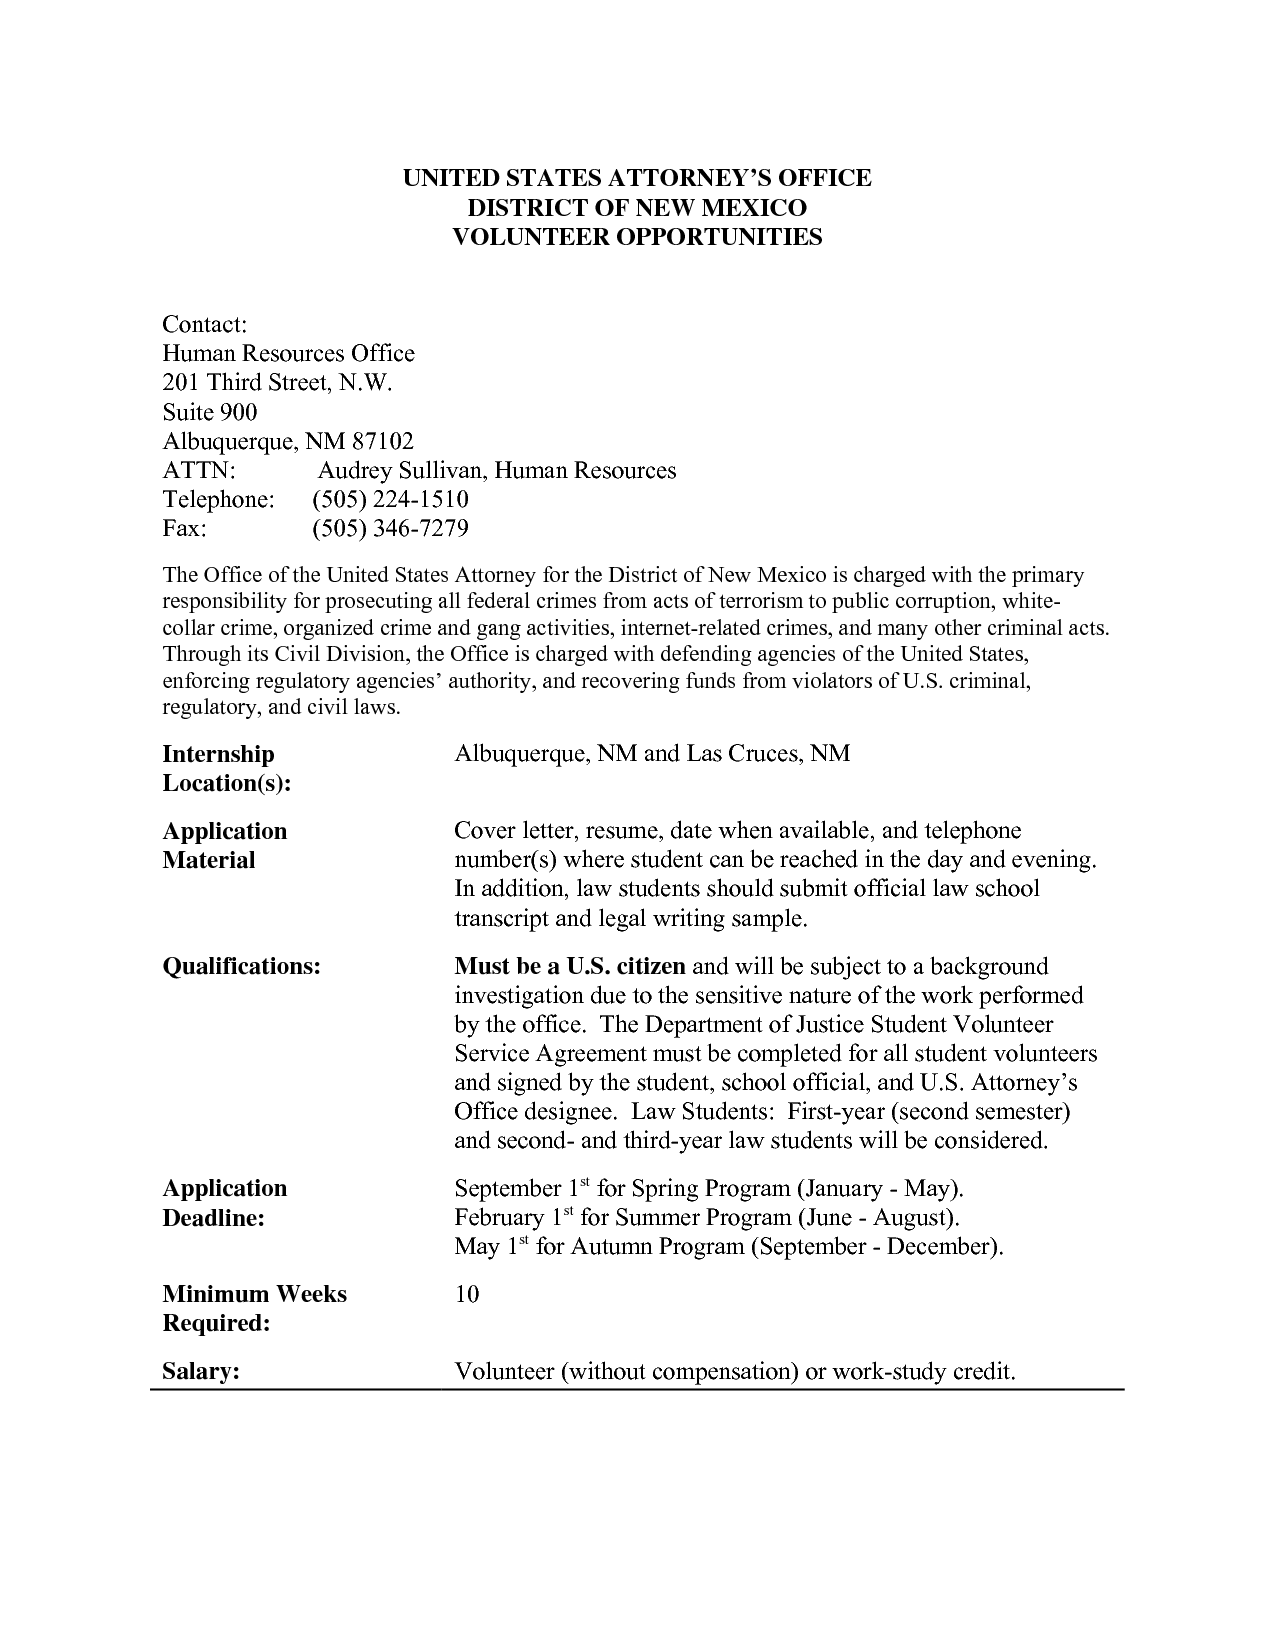 Volunteer Work On ResumeVolunteer Work On Resume Application Letter ...